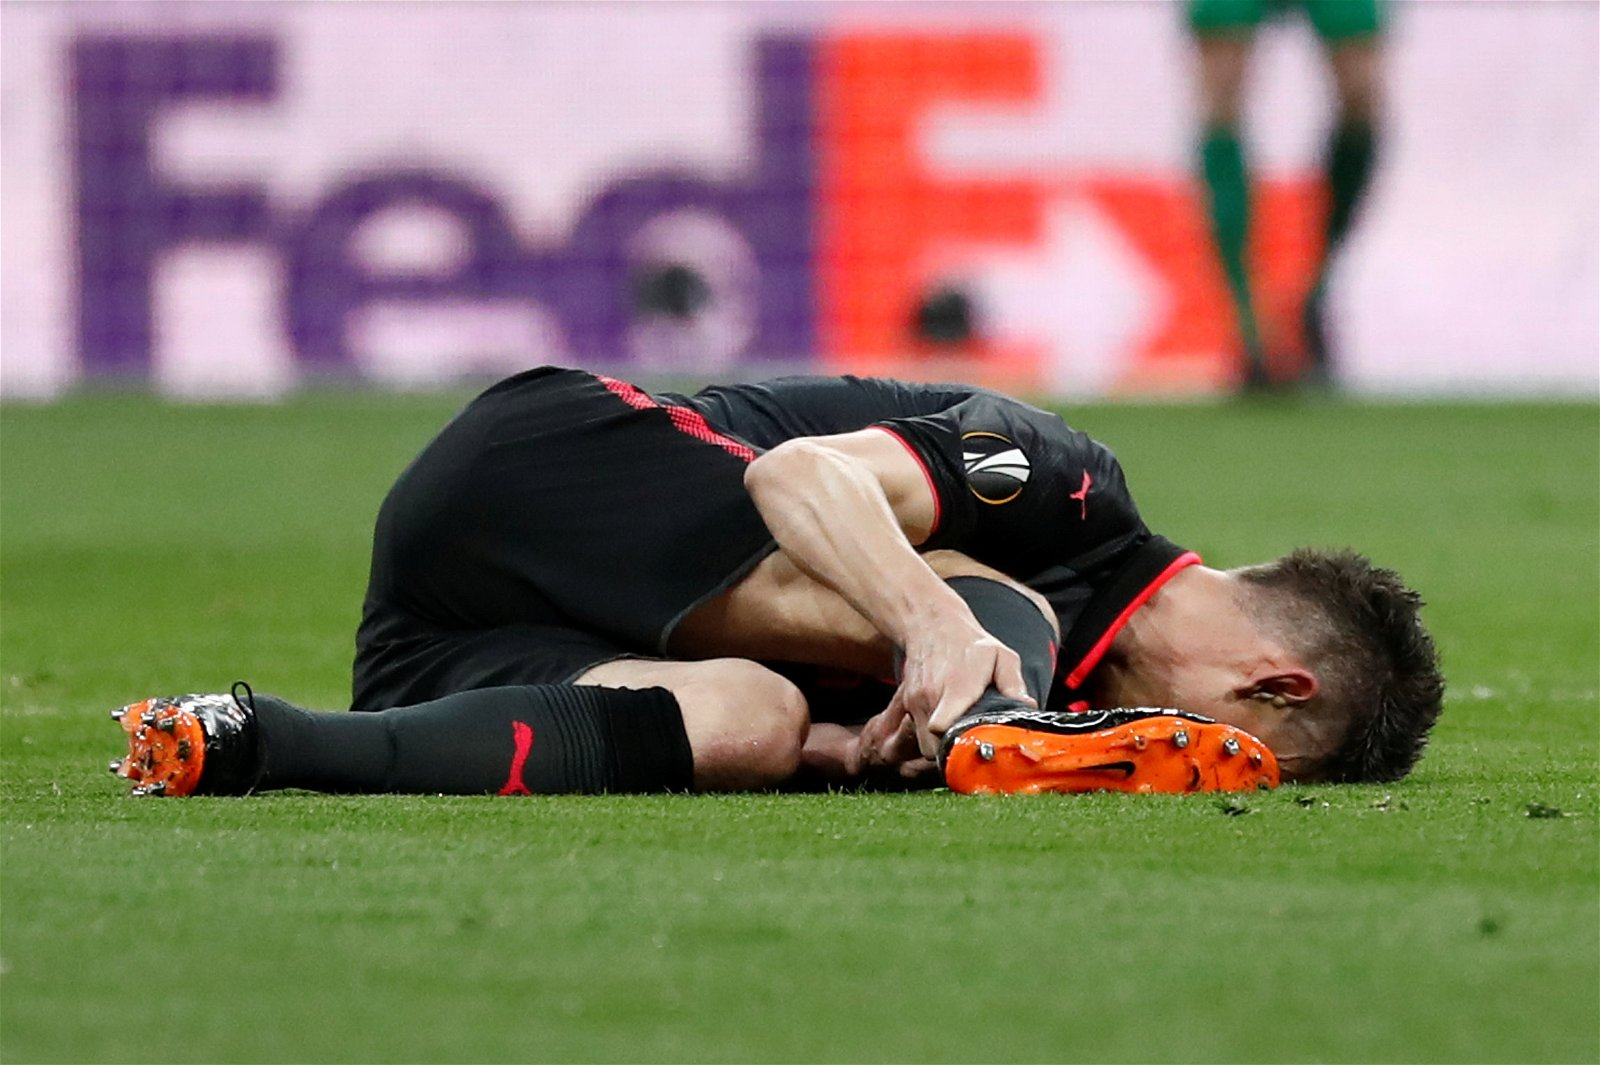 Laurent Koscielny suffers an injury during Arsenal's Europa League match against Atletico Madrid